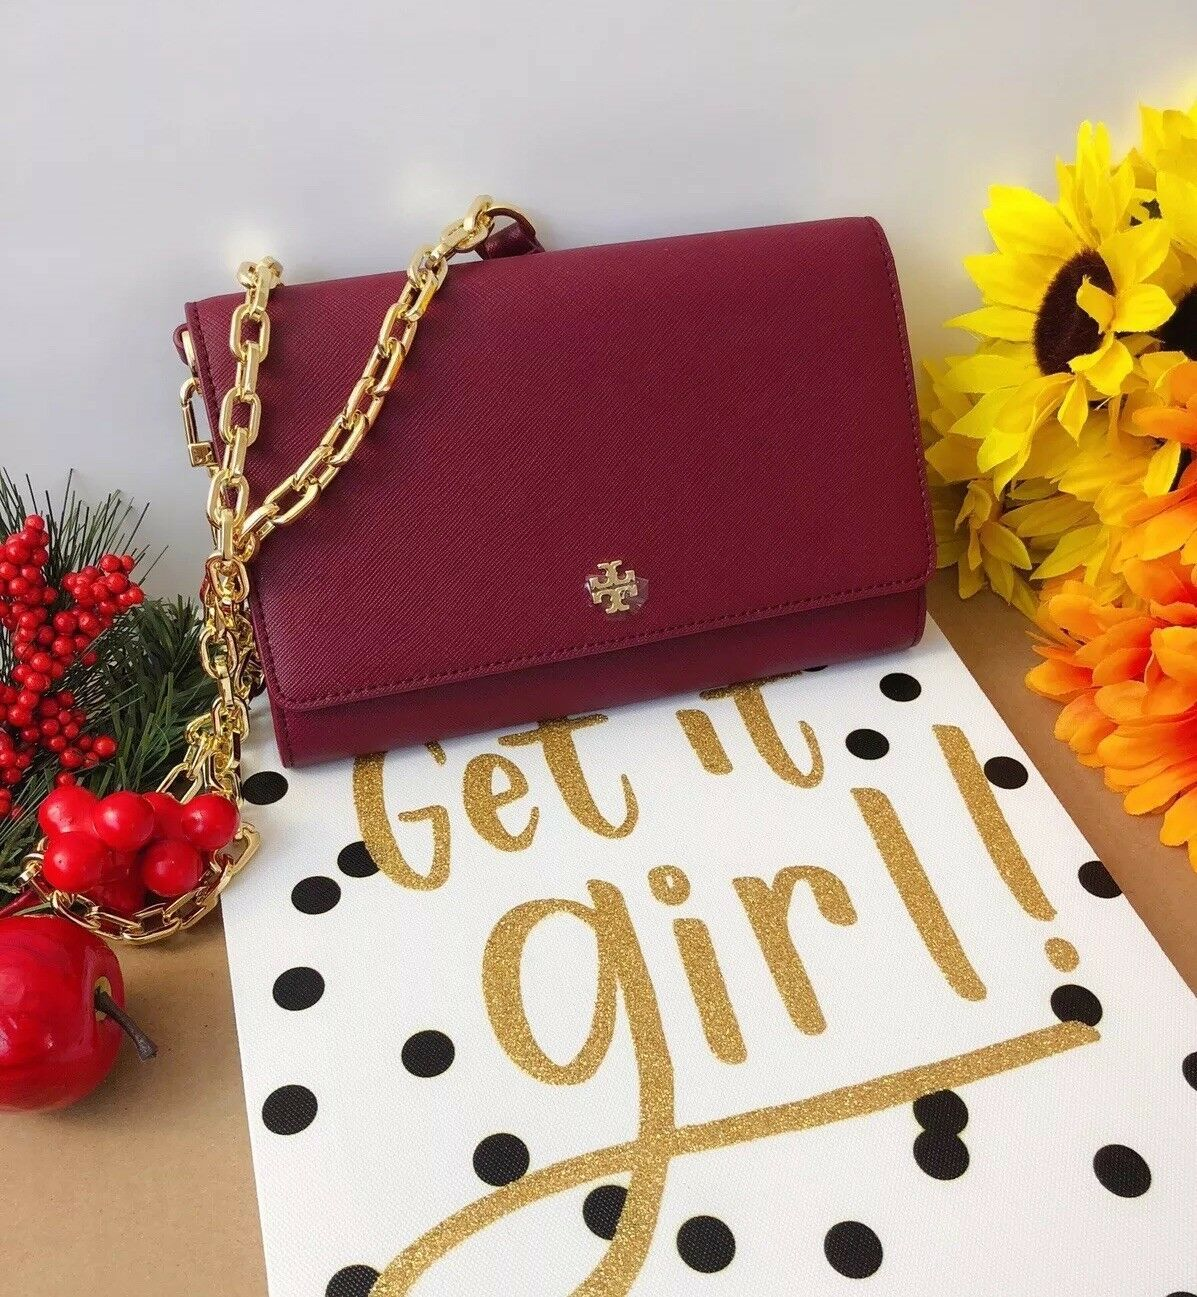 *New Arrival* Tory Burch Emerson Chain Wallet Crossbody Bag *FREE SHIPPING*